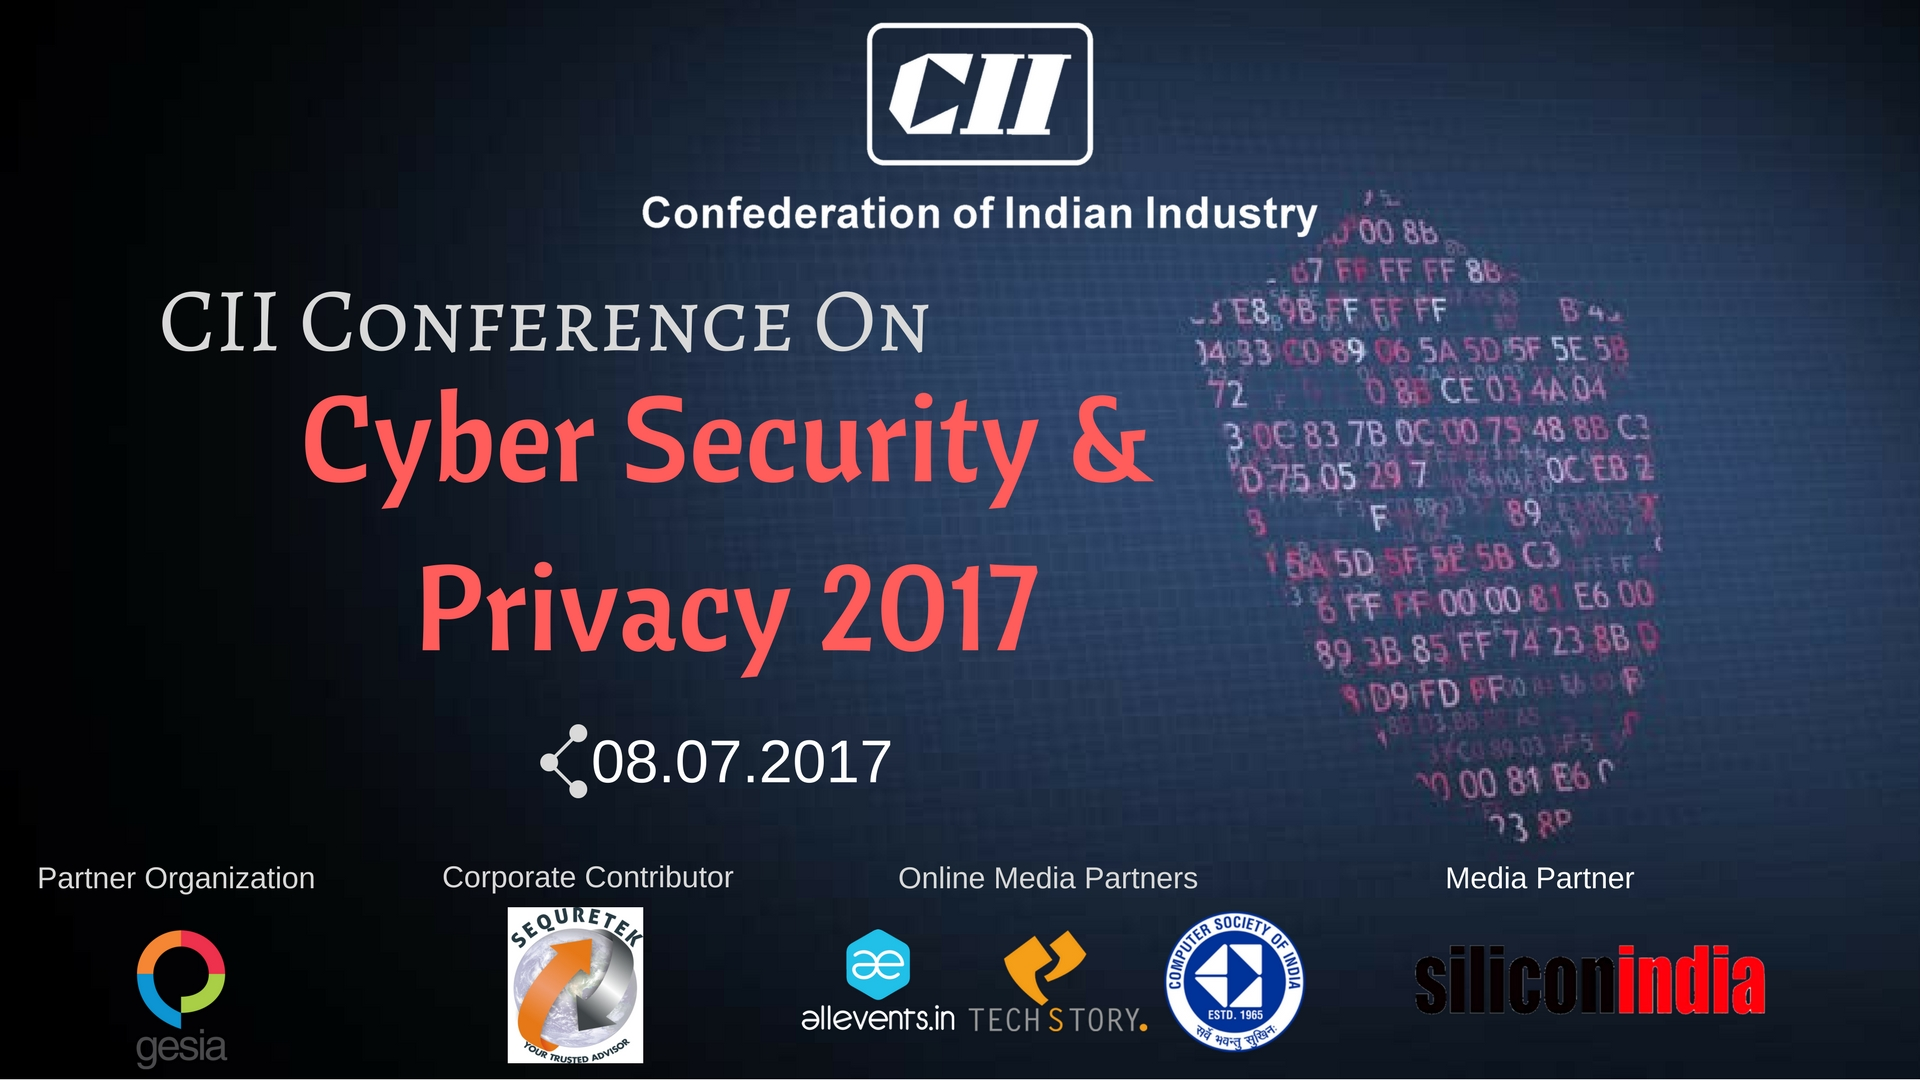 cii cybersecurity conference